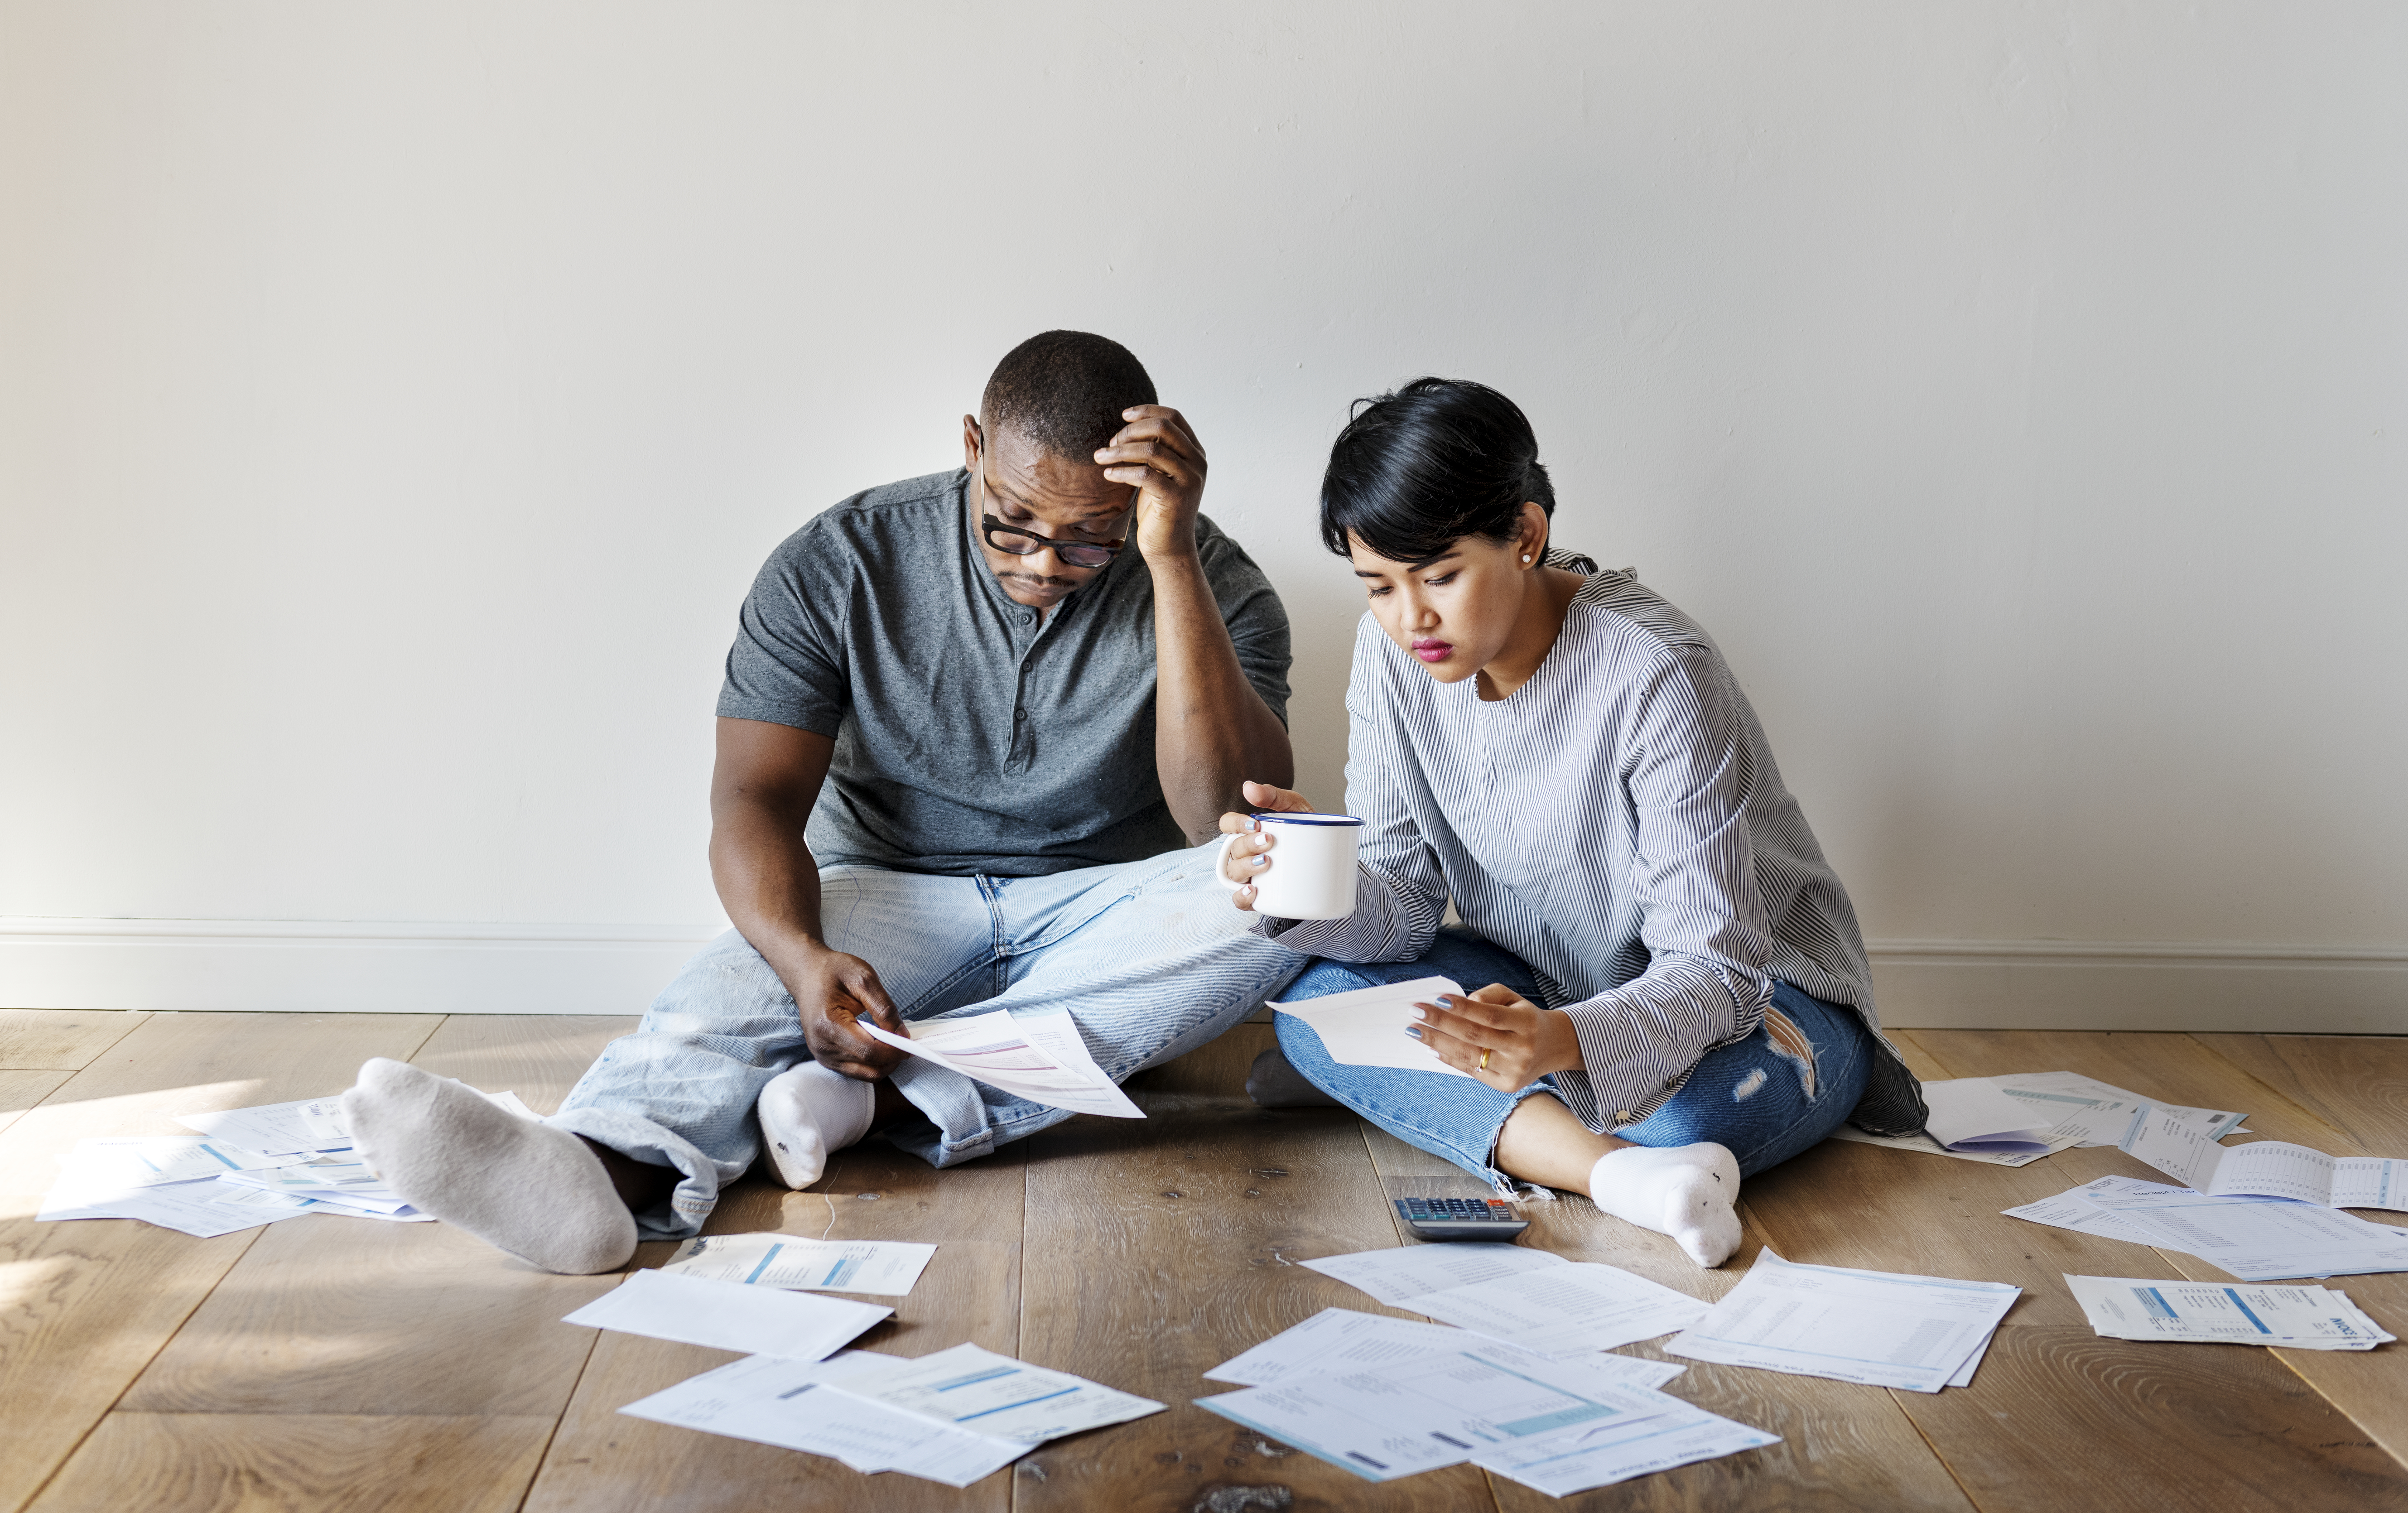 7 Mistakes People Make When Trying to Get out of Debt